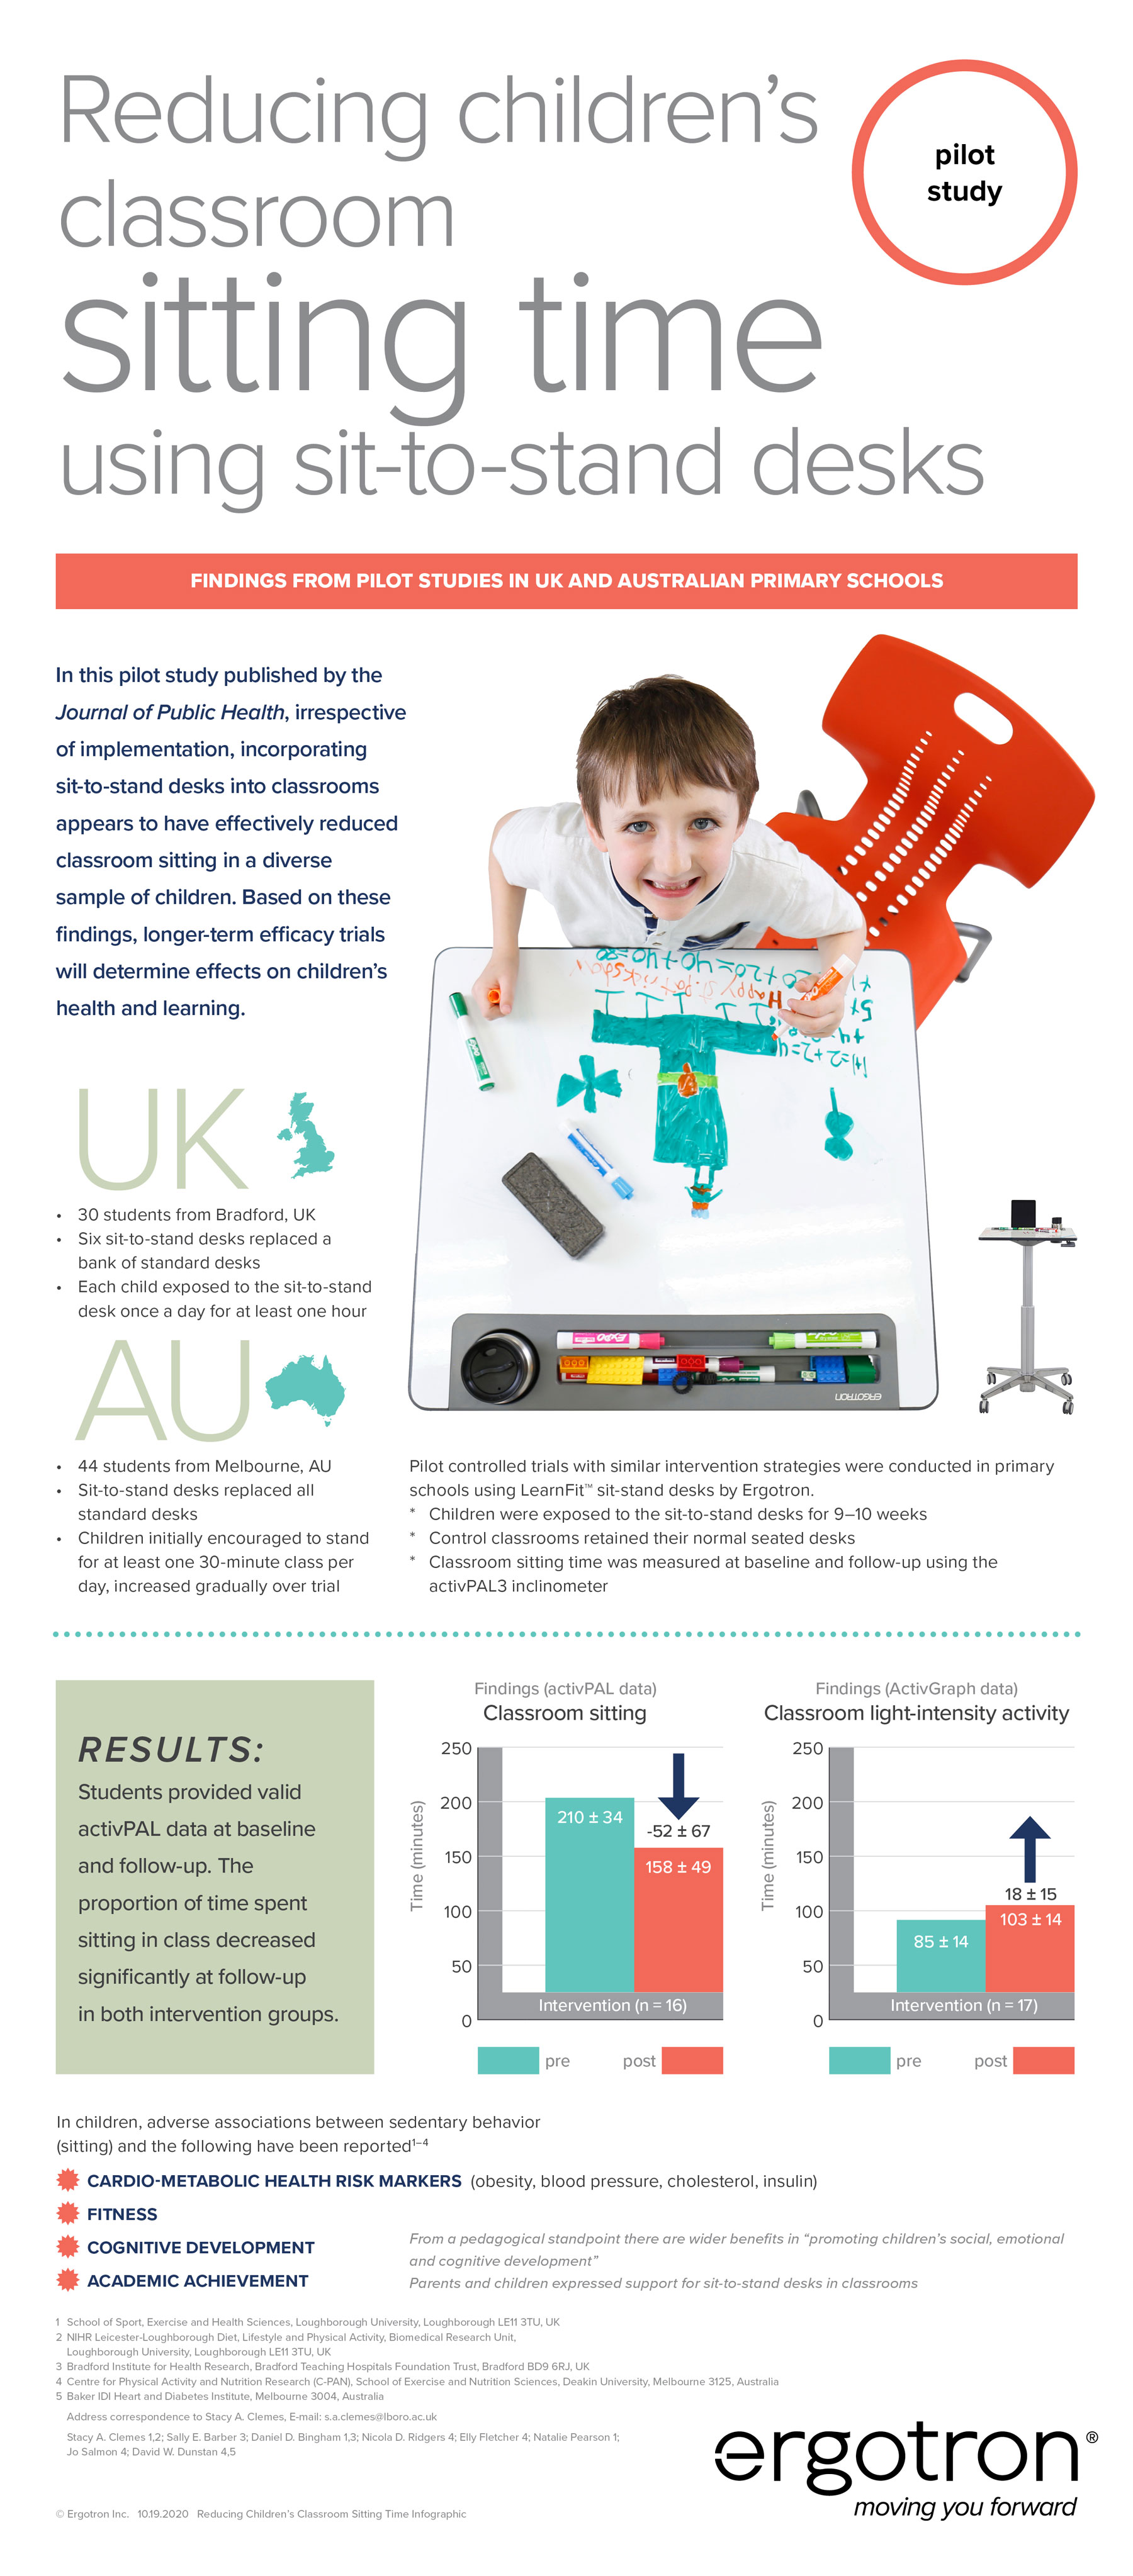 Reducing Classroom Sitting Time infographic